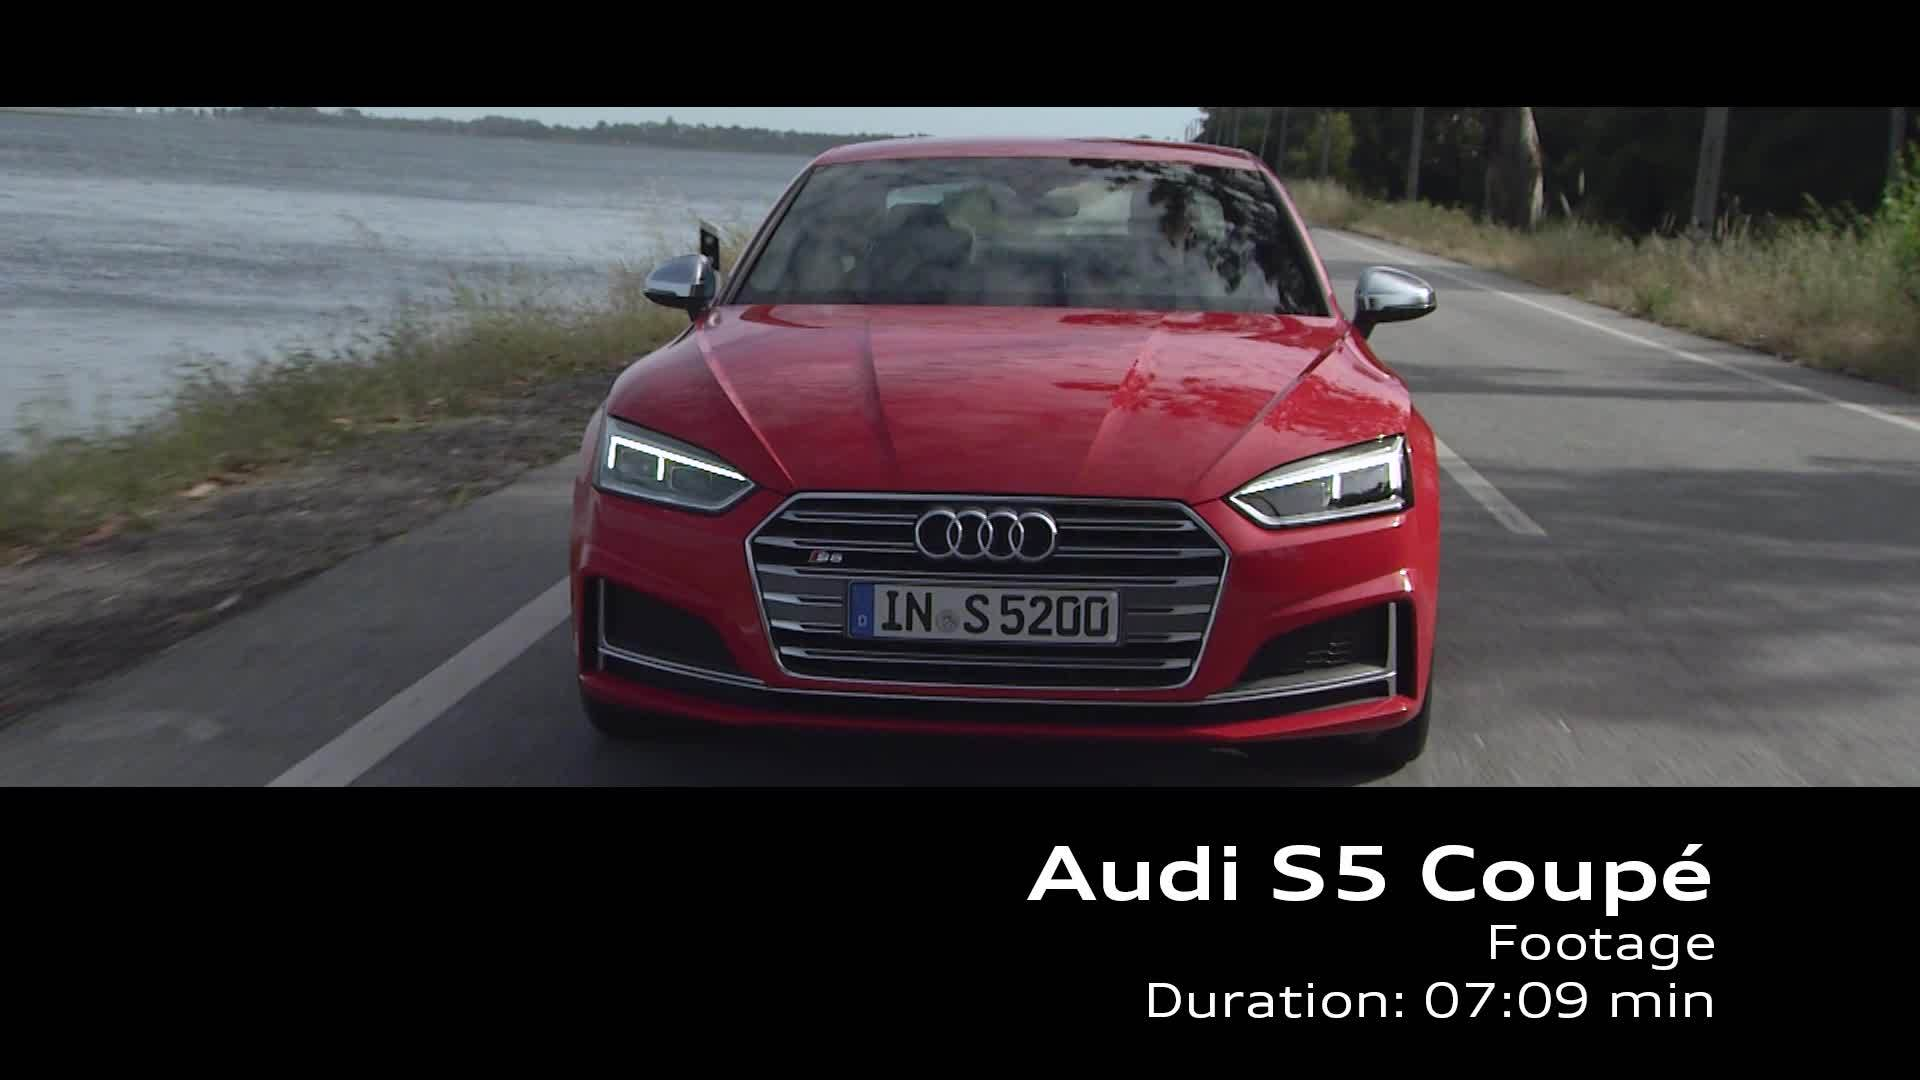 Audi S5 Coupé – Footage on Location